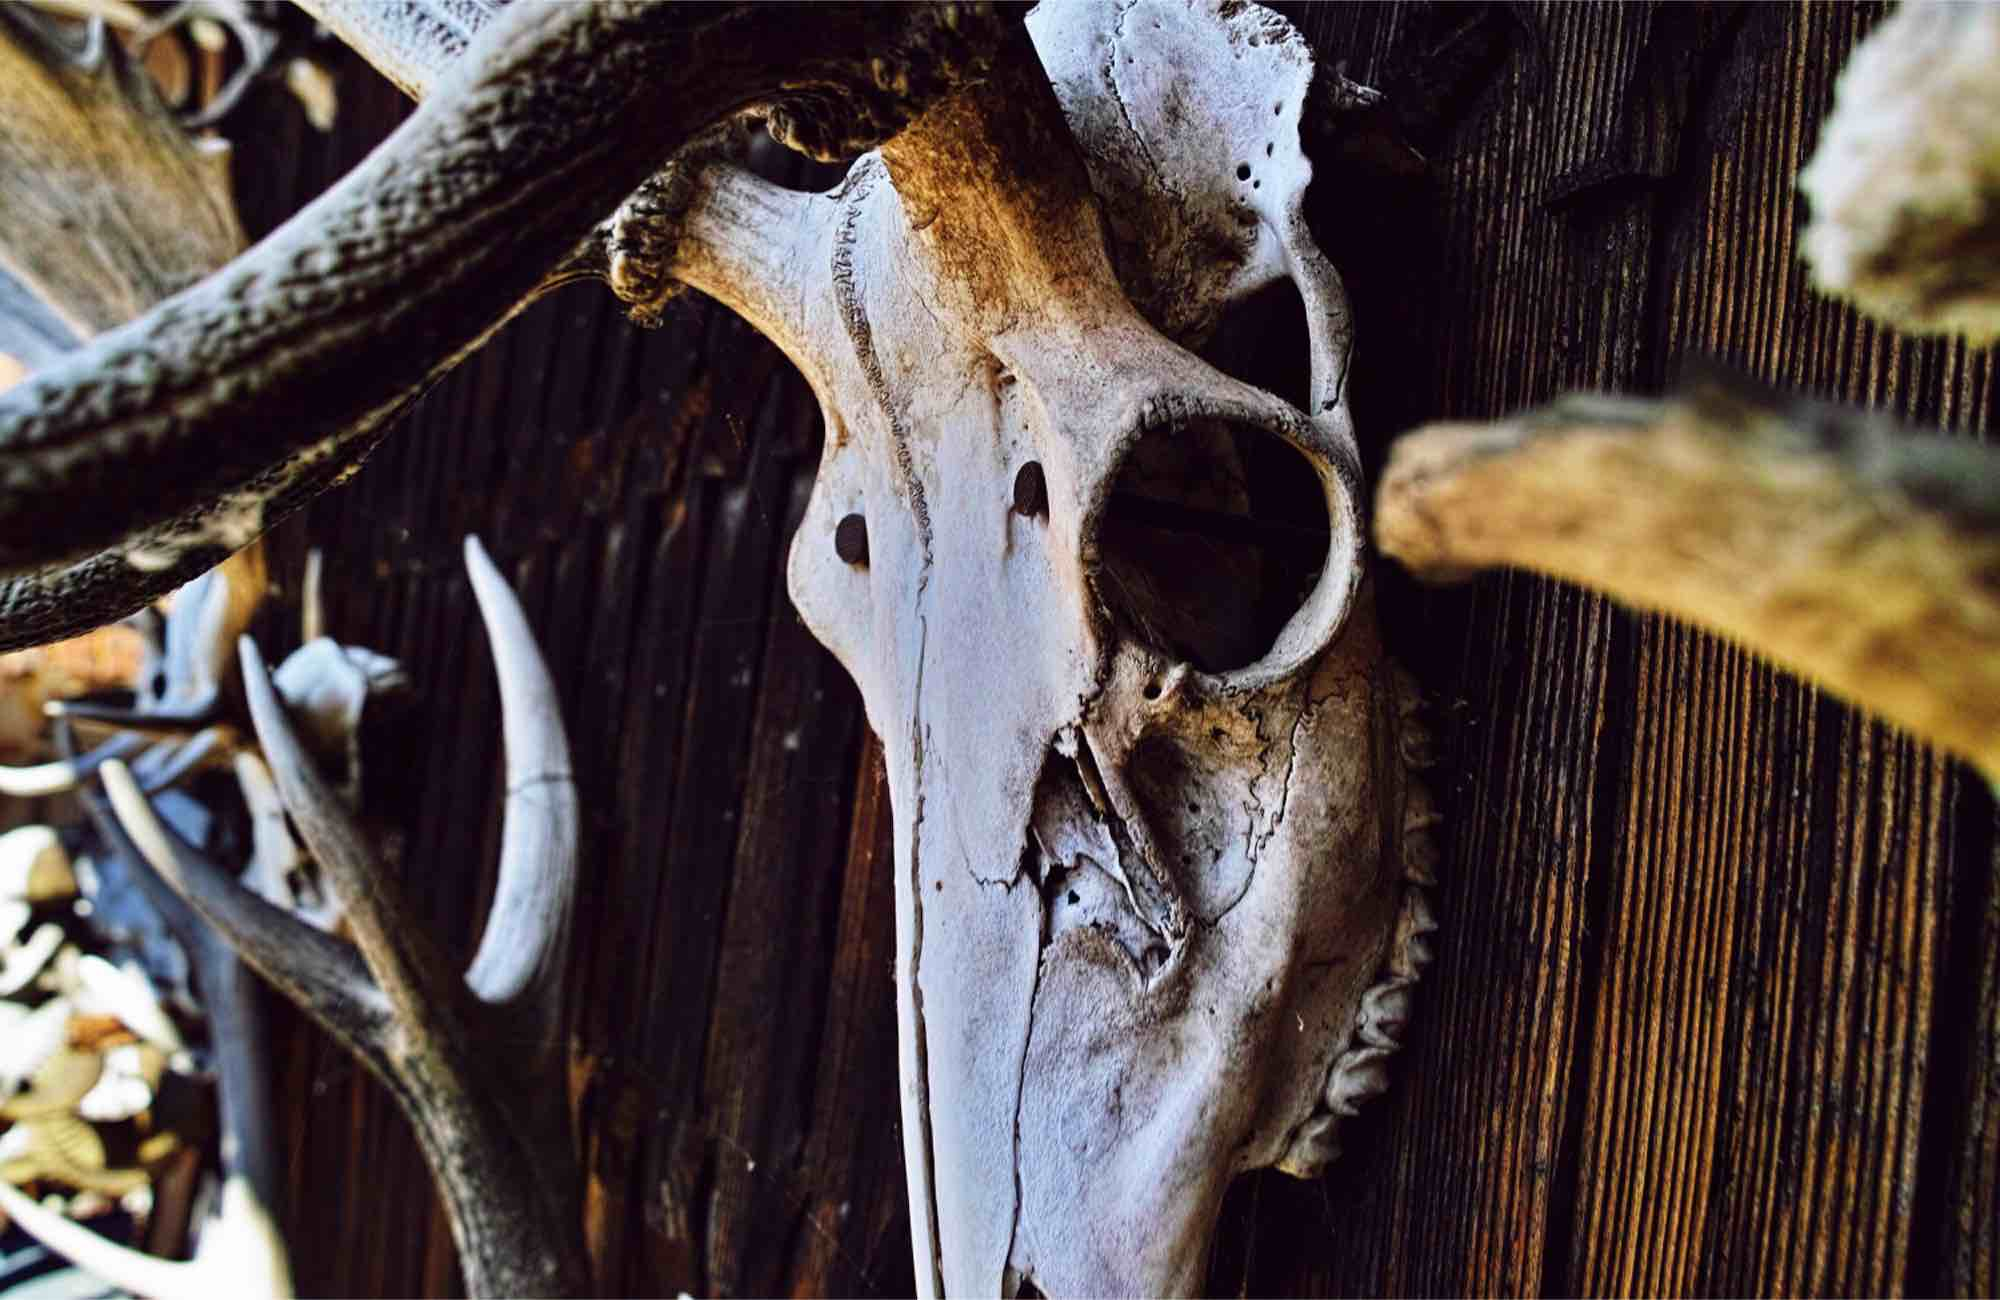 An animal skull mounted on a wall